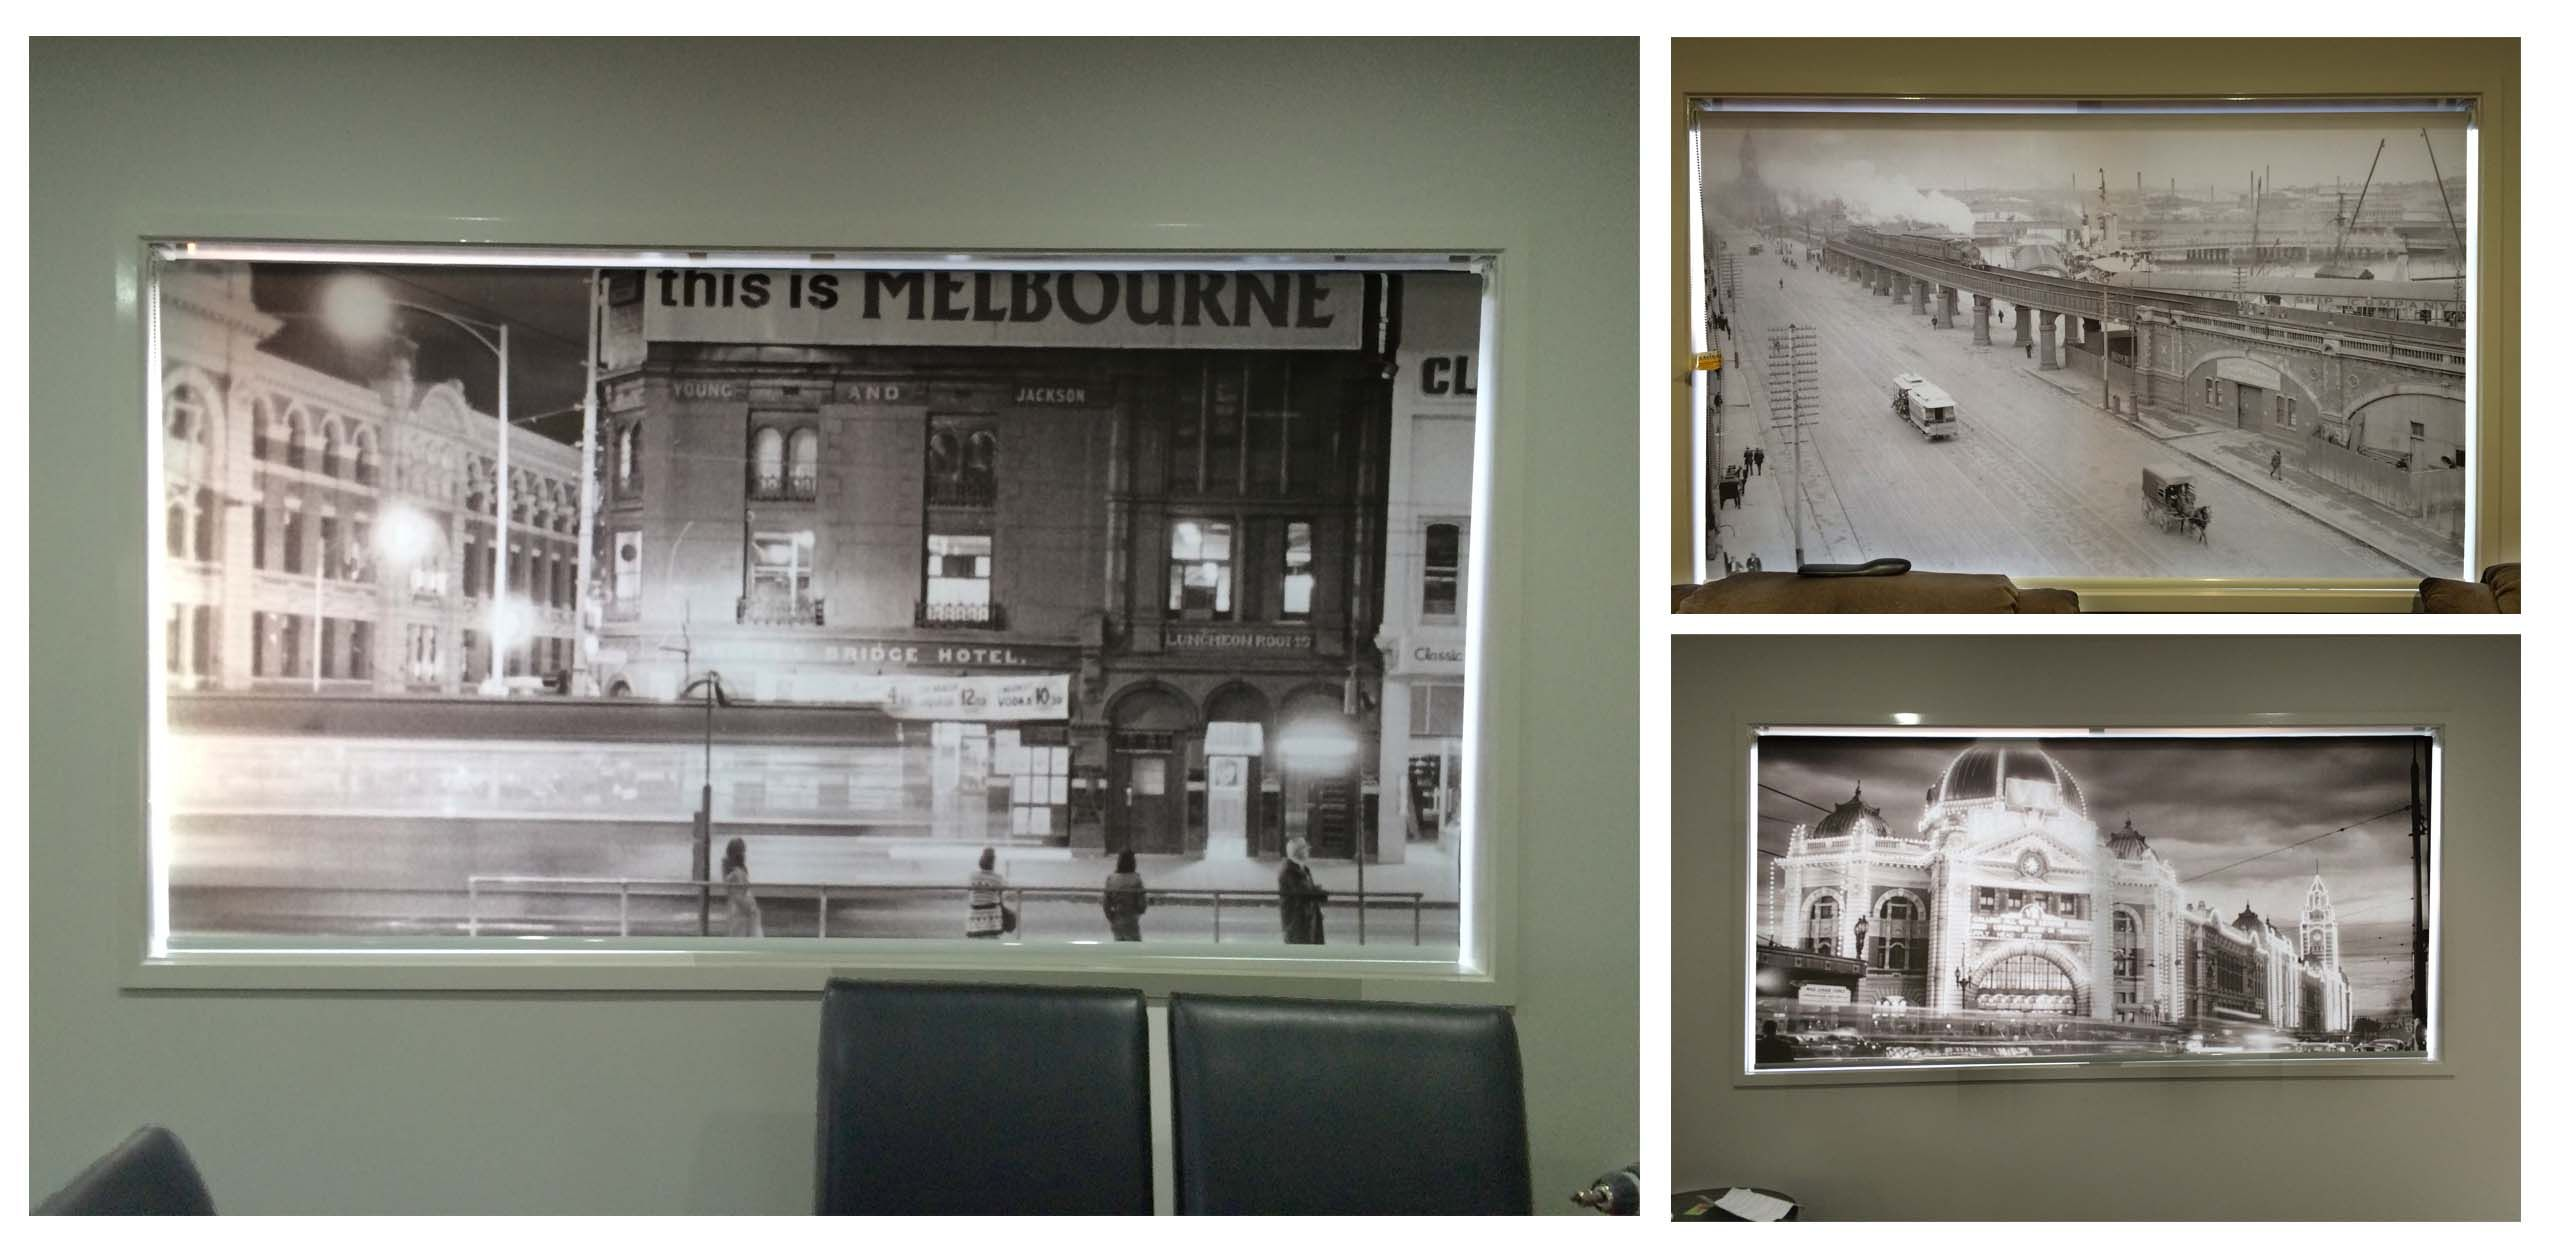 amazing black and white photos of melbourne street scenes look great printed on custom roller blinds